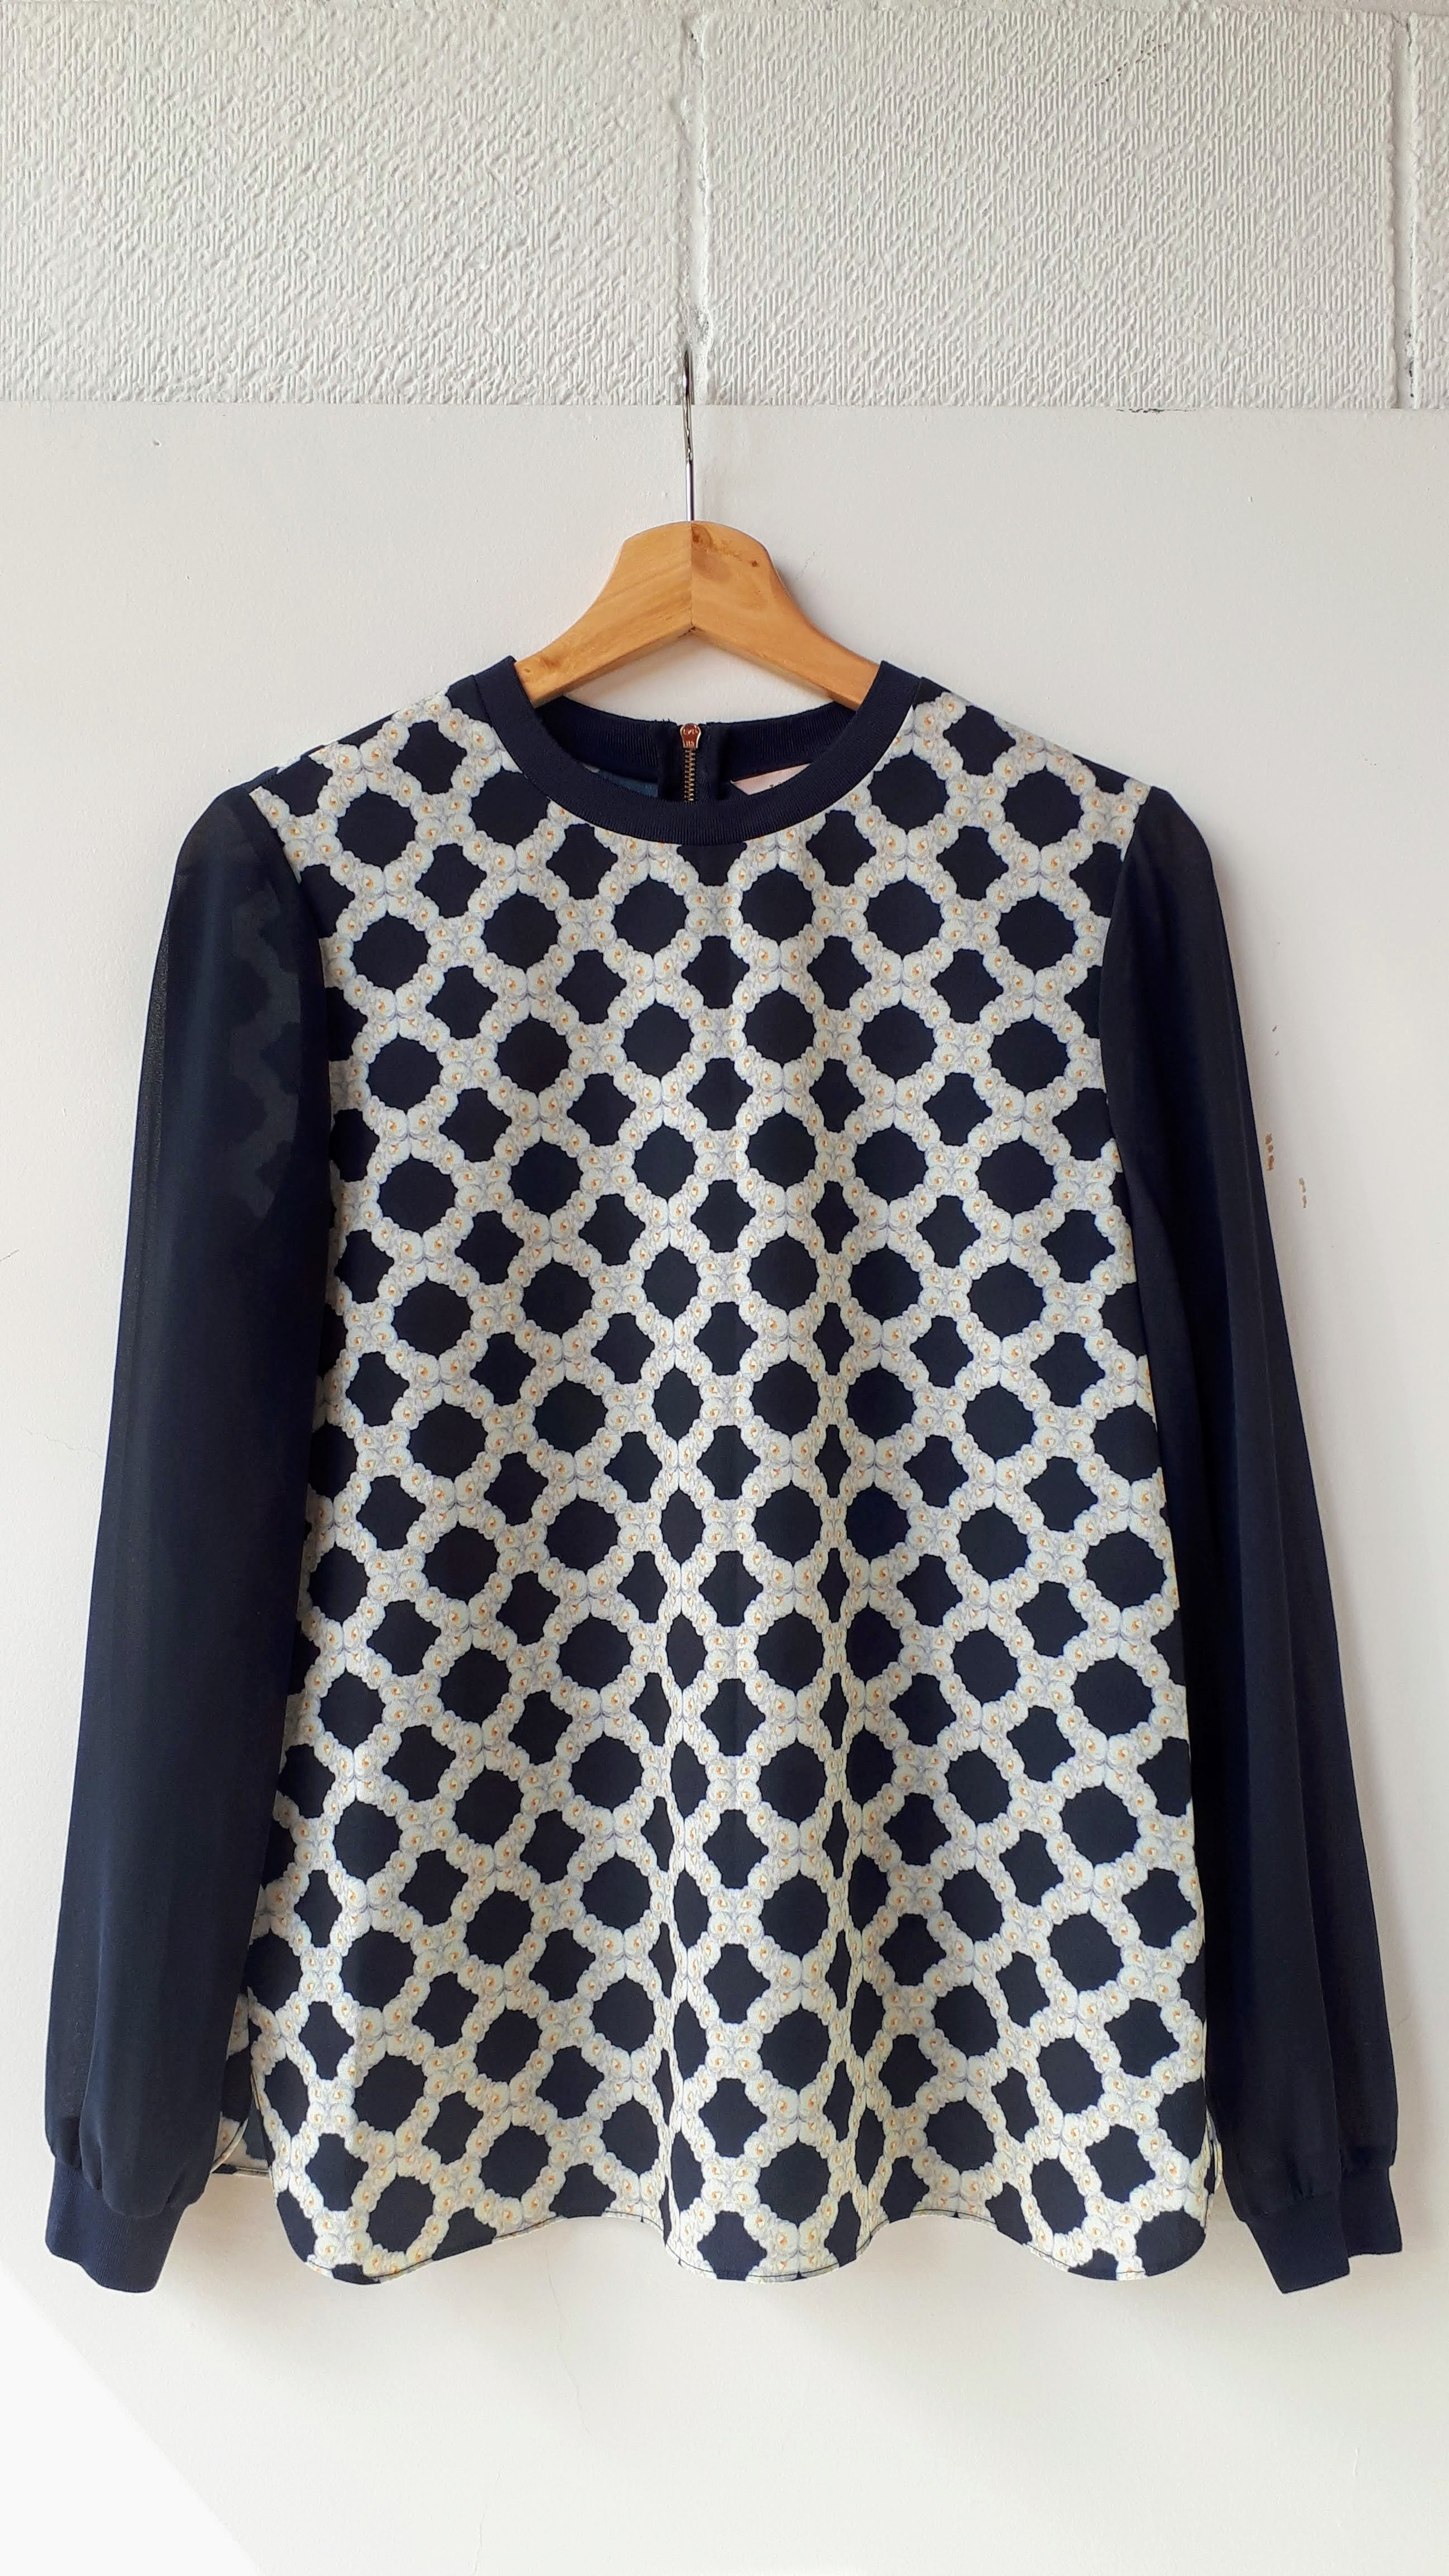 Ted Baker shirt; Size M, $62